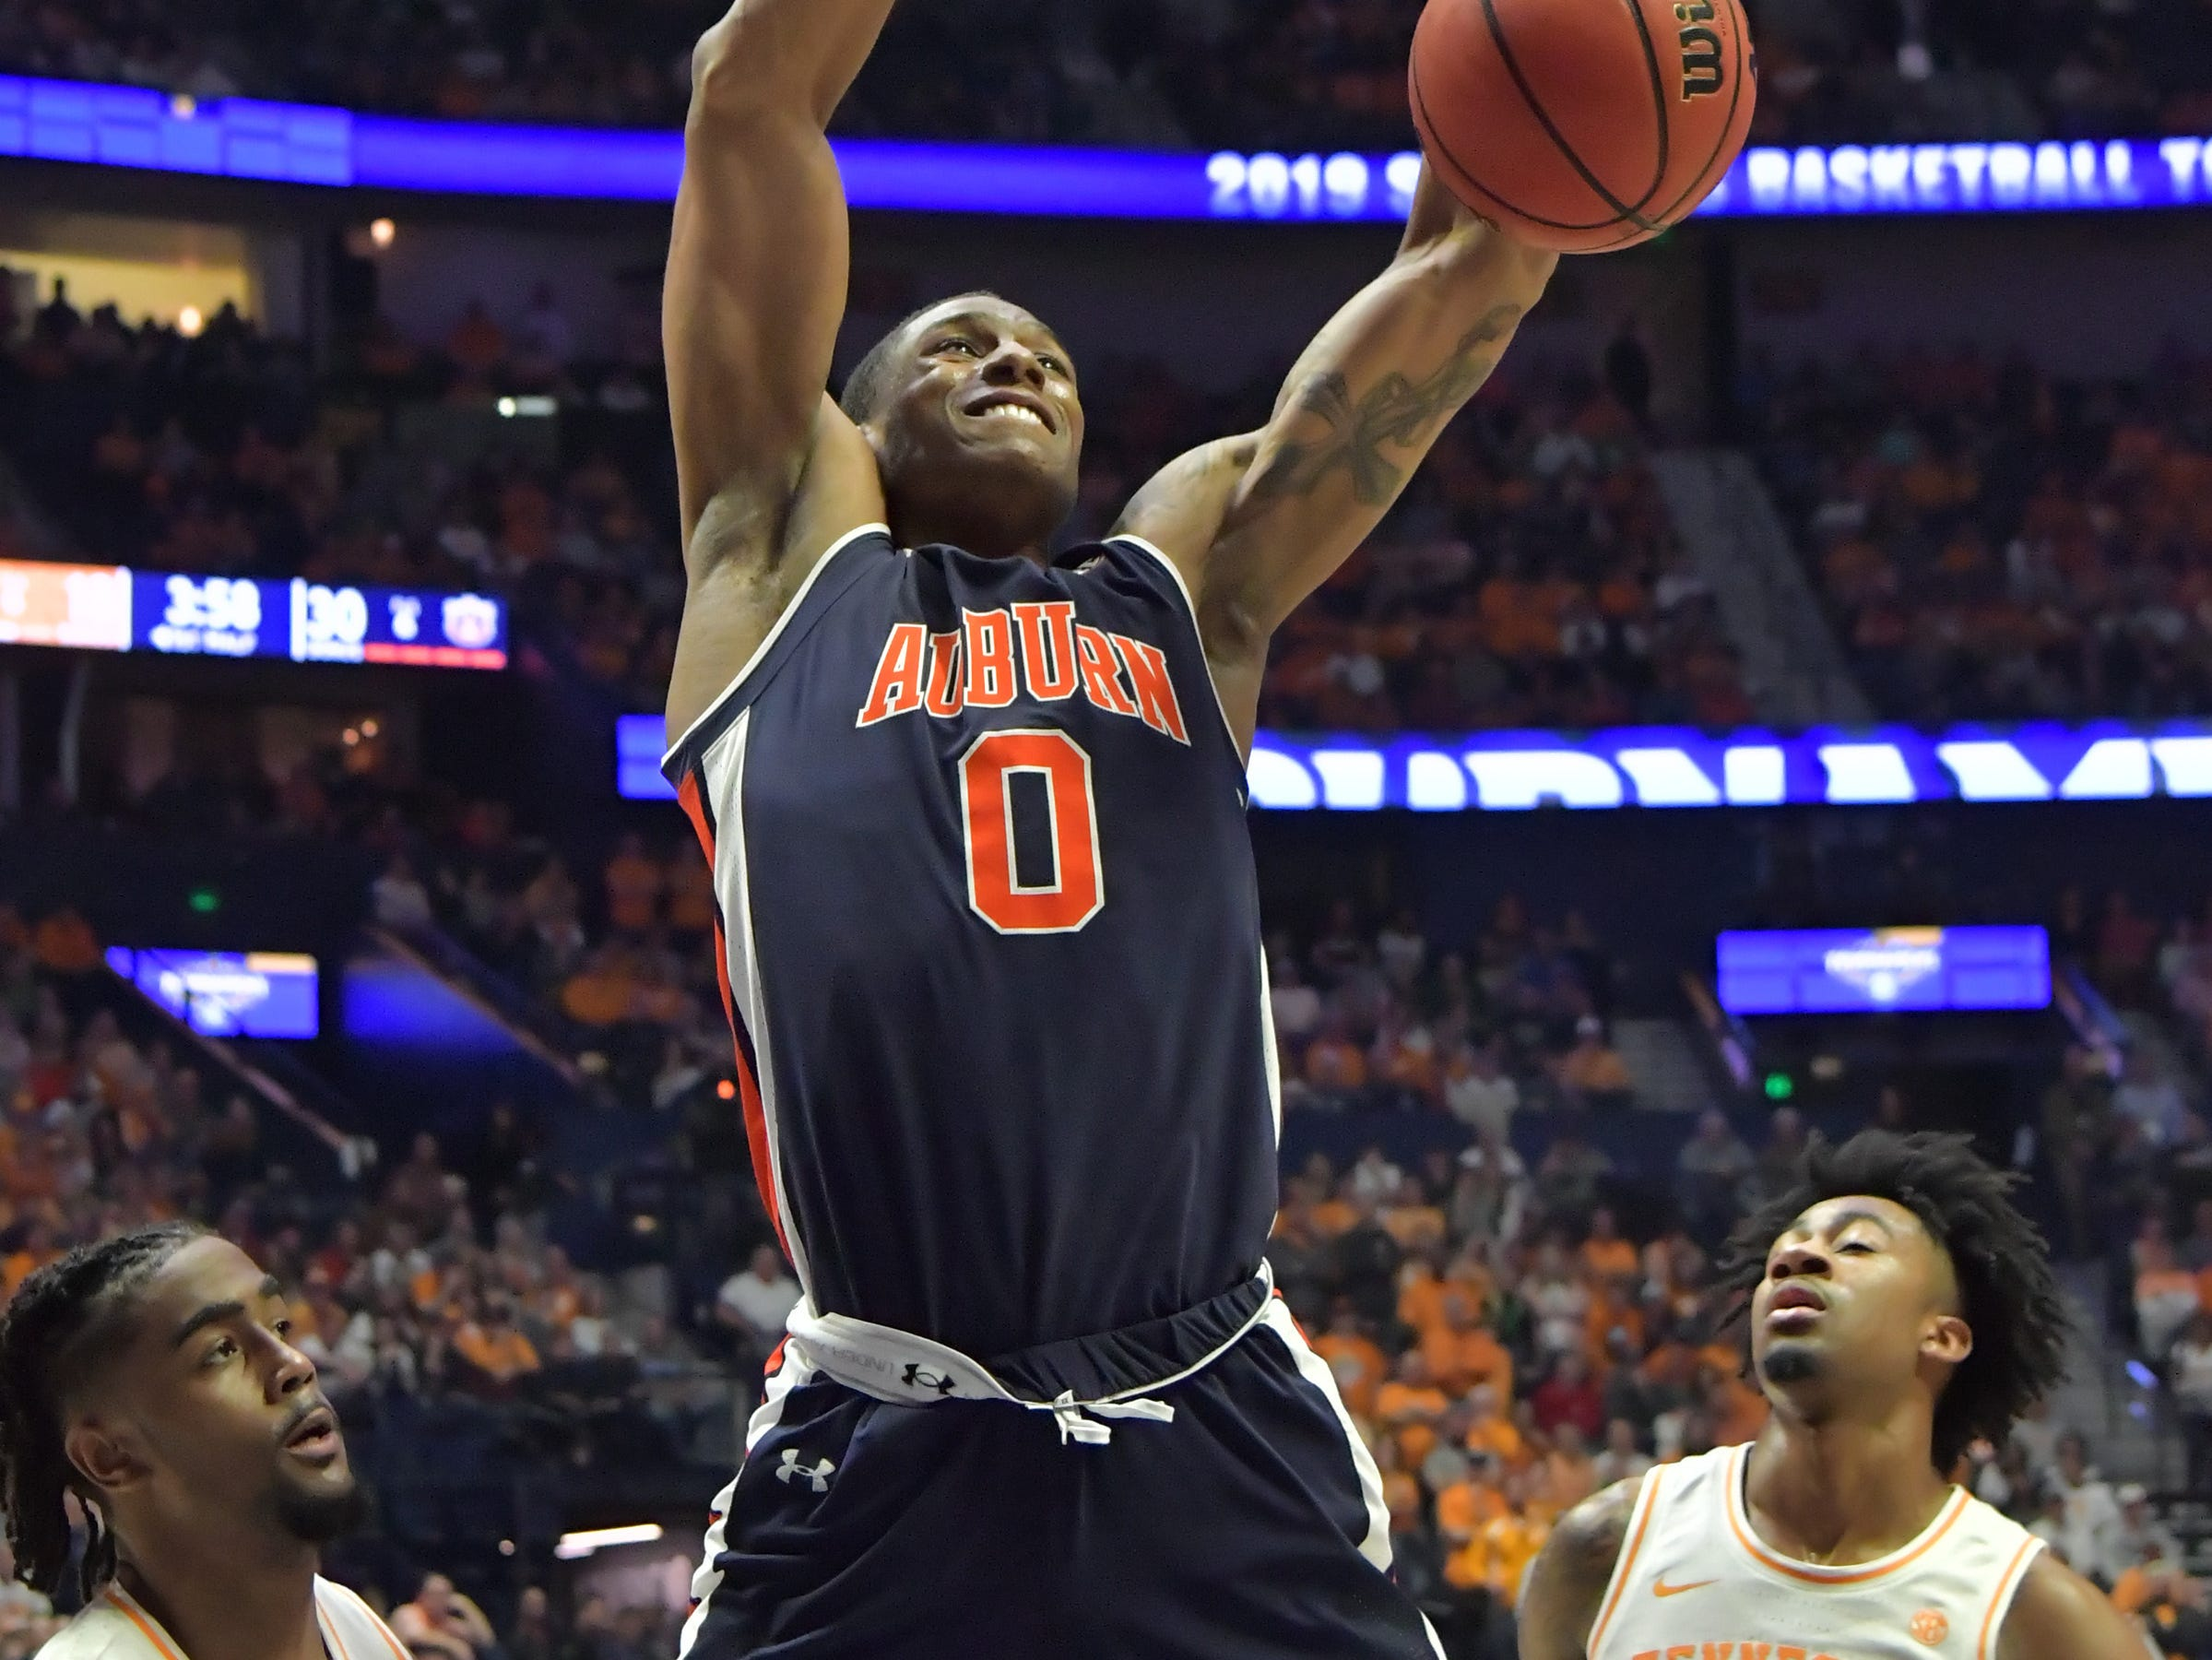 Mar 17, 2019; Nashville, TN, USA; Auburn Tigers forward Horace Spencer (0) loses the ball against Tennessee Volunteers guard Jordan Bone (0) and guard Jordan Bowden (23) during the first half of the championship game in the SEC conference tournament at Bridgestone Arena. Mandatory Credit: Jim Brown-USA TODAY Sports